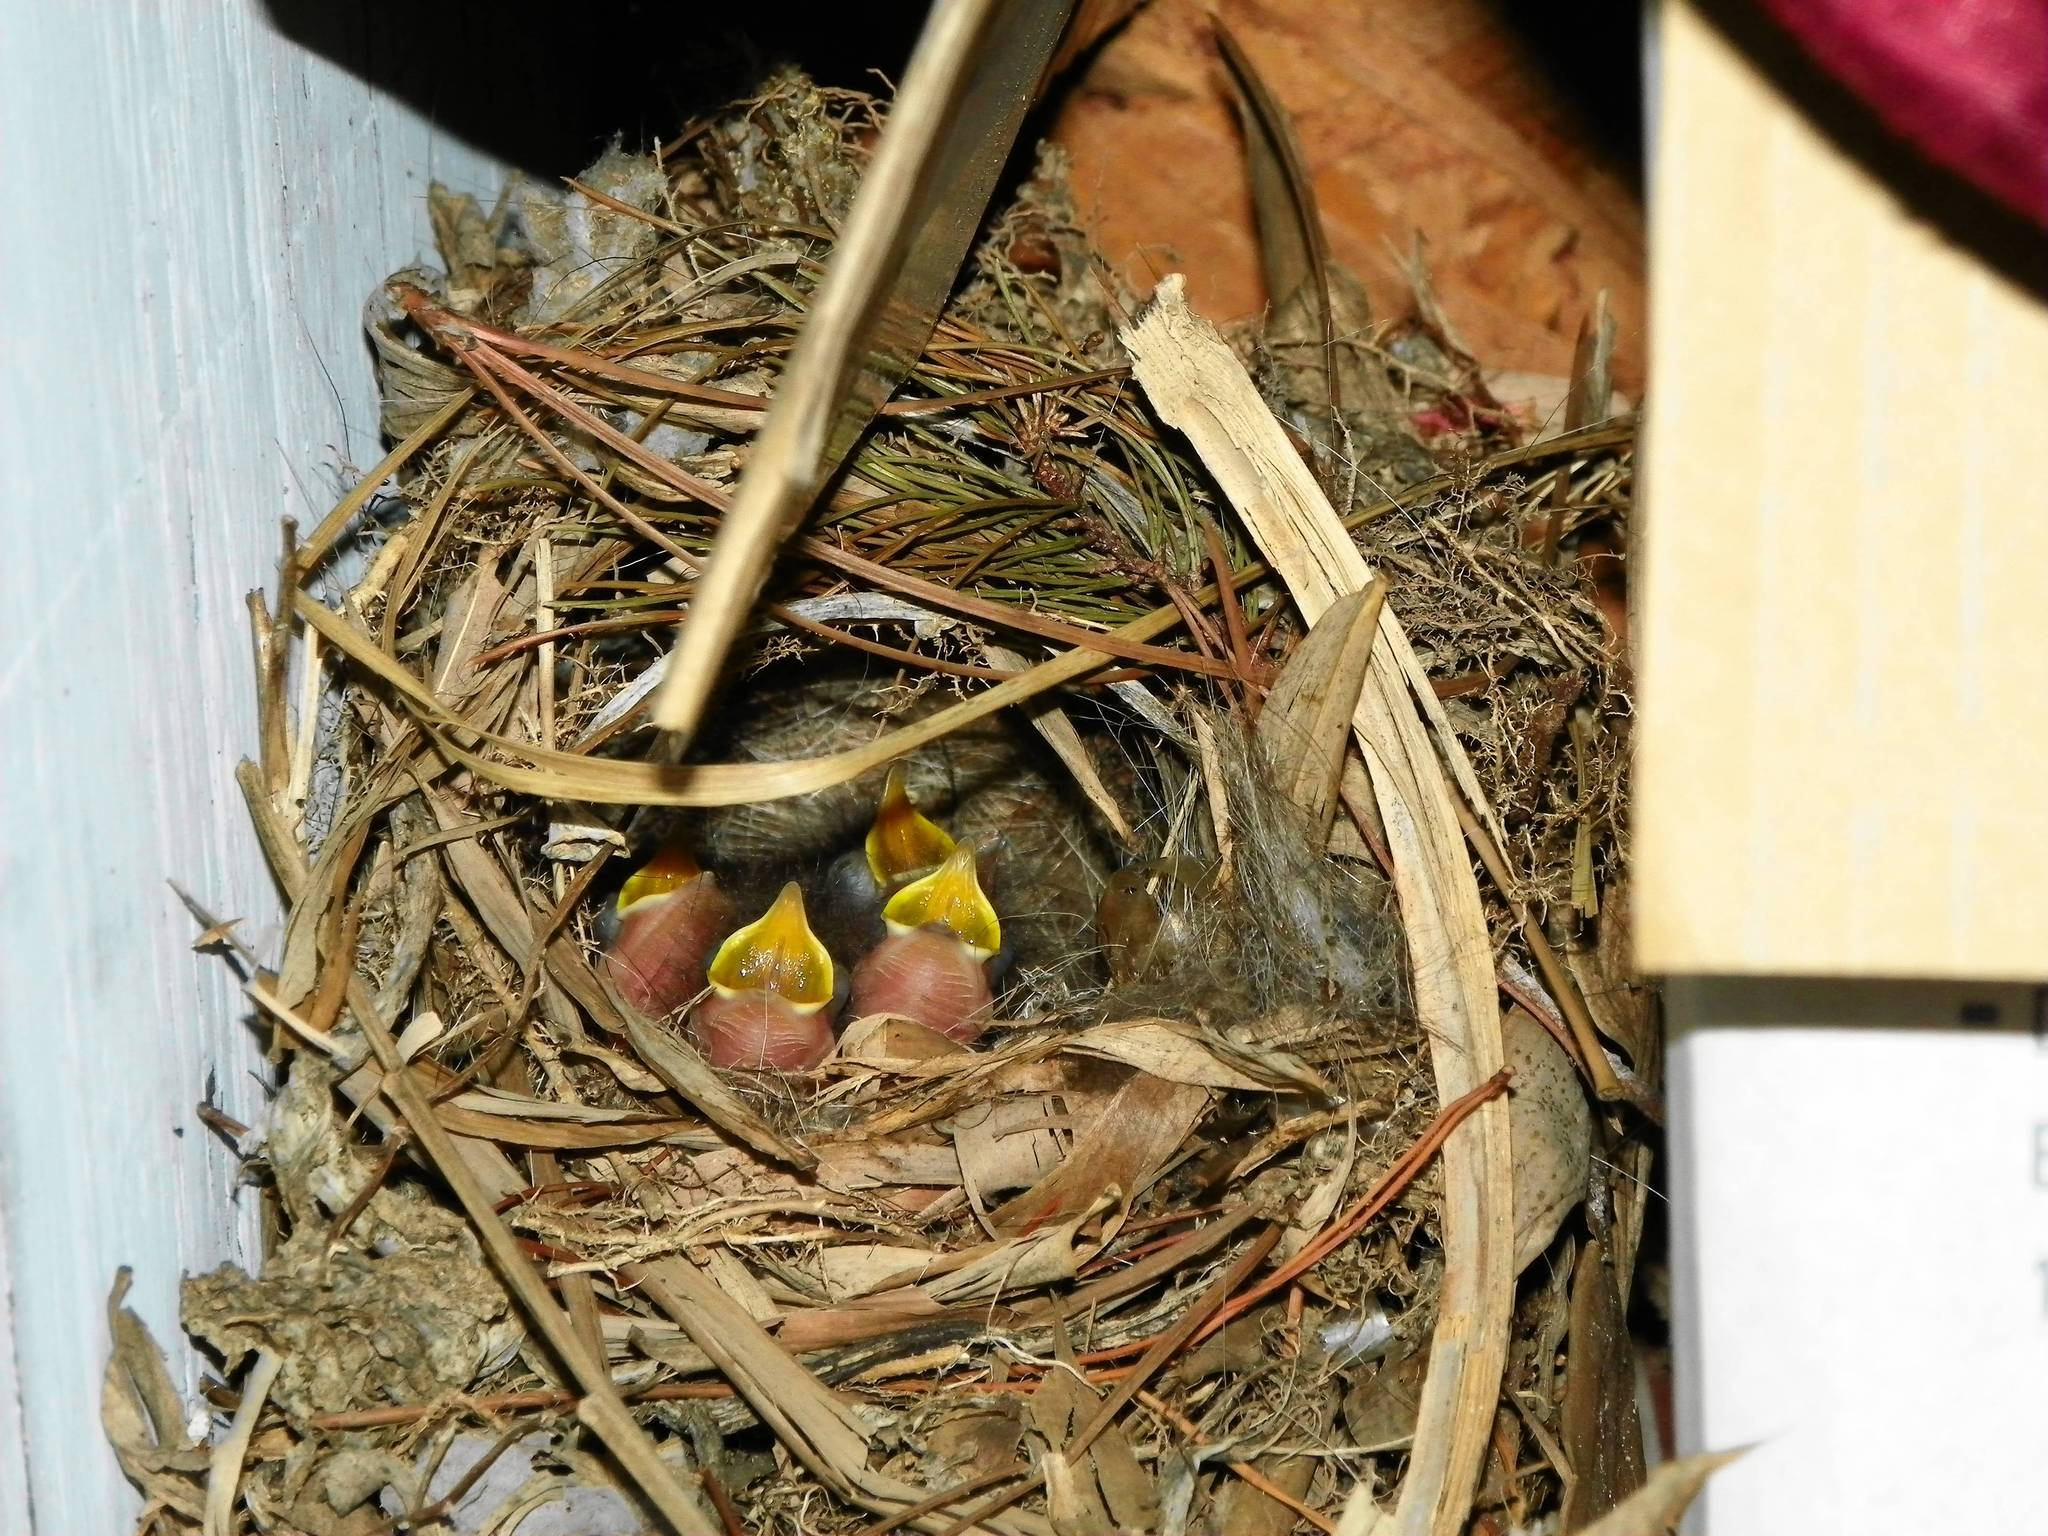 Four hungry Carolina wrens await food.  Unfortunately, the baby birds themselves soon became food for a equally hungry rat snake.